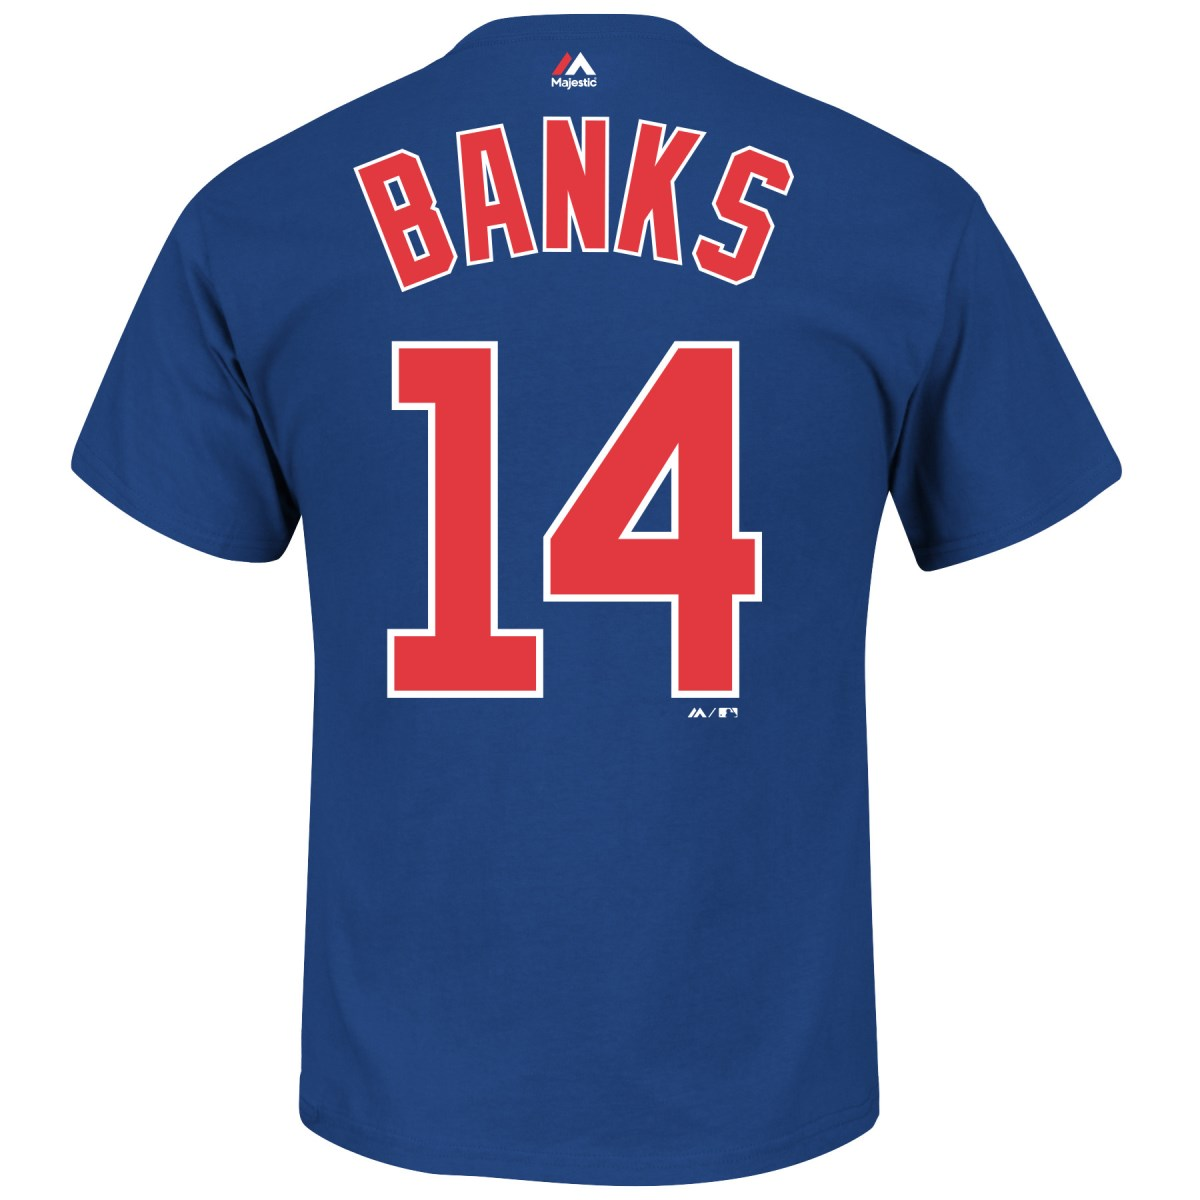 Ernie Banks Chicago Cubs MLB Majestic Cooperstown Player Blue T-Shirt